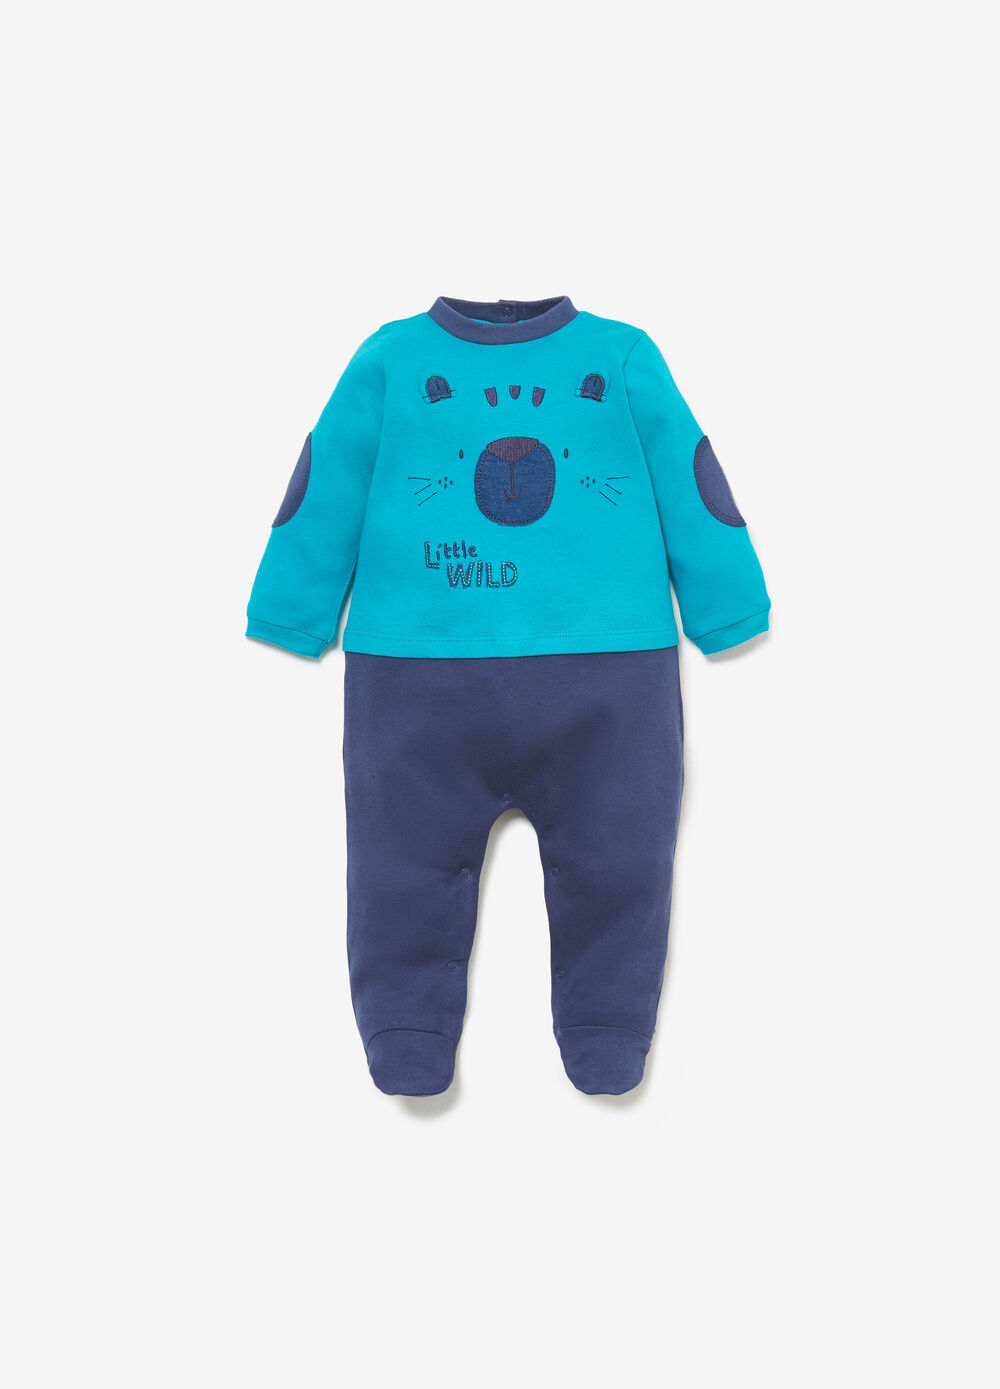 Two-tone cotton romper suit with animals